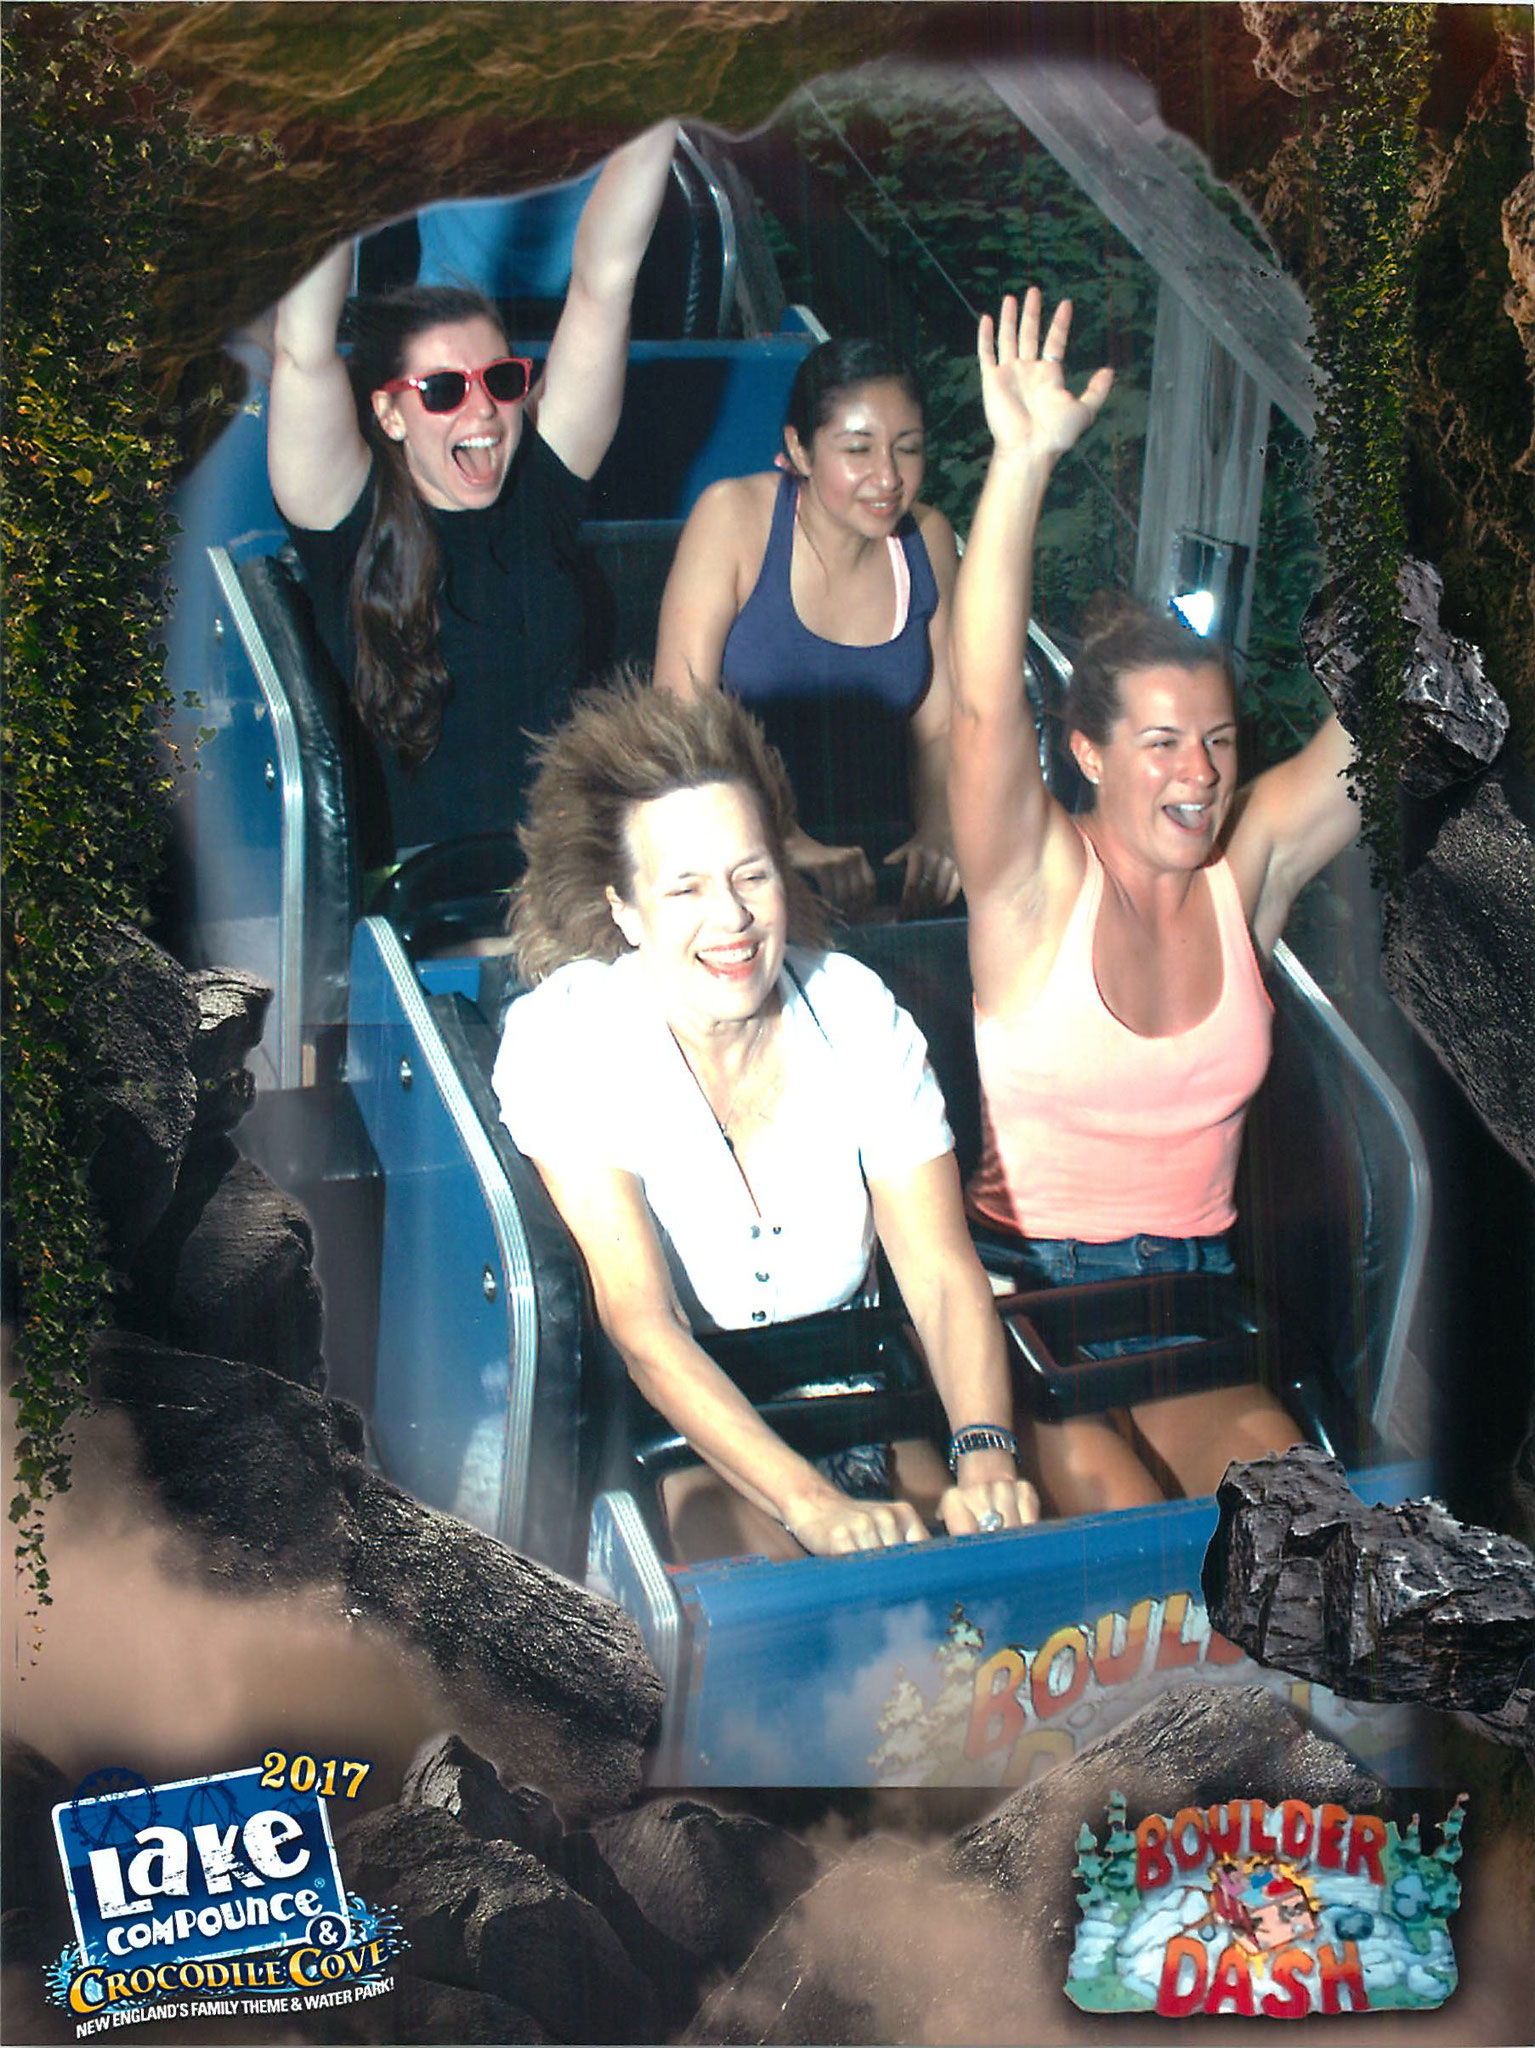 Lorraine on her lab trip to Lake Compounce, July 2017